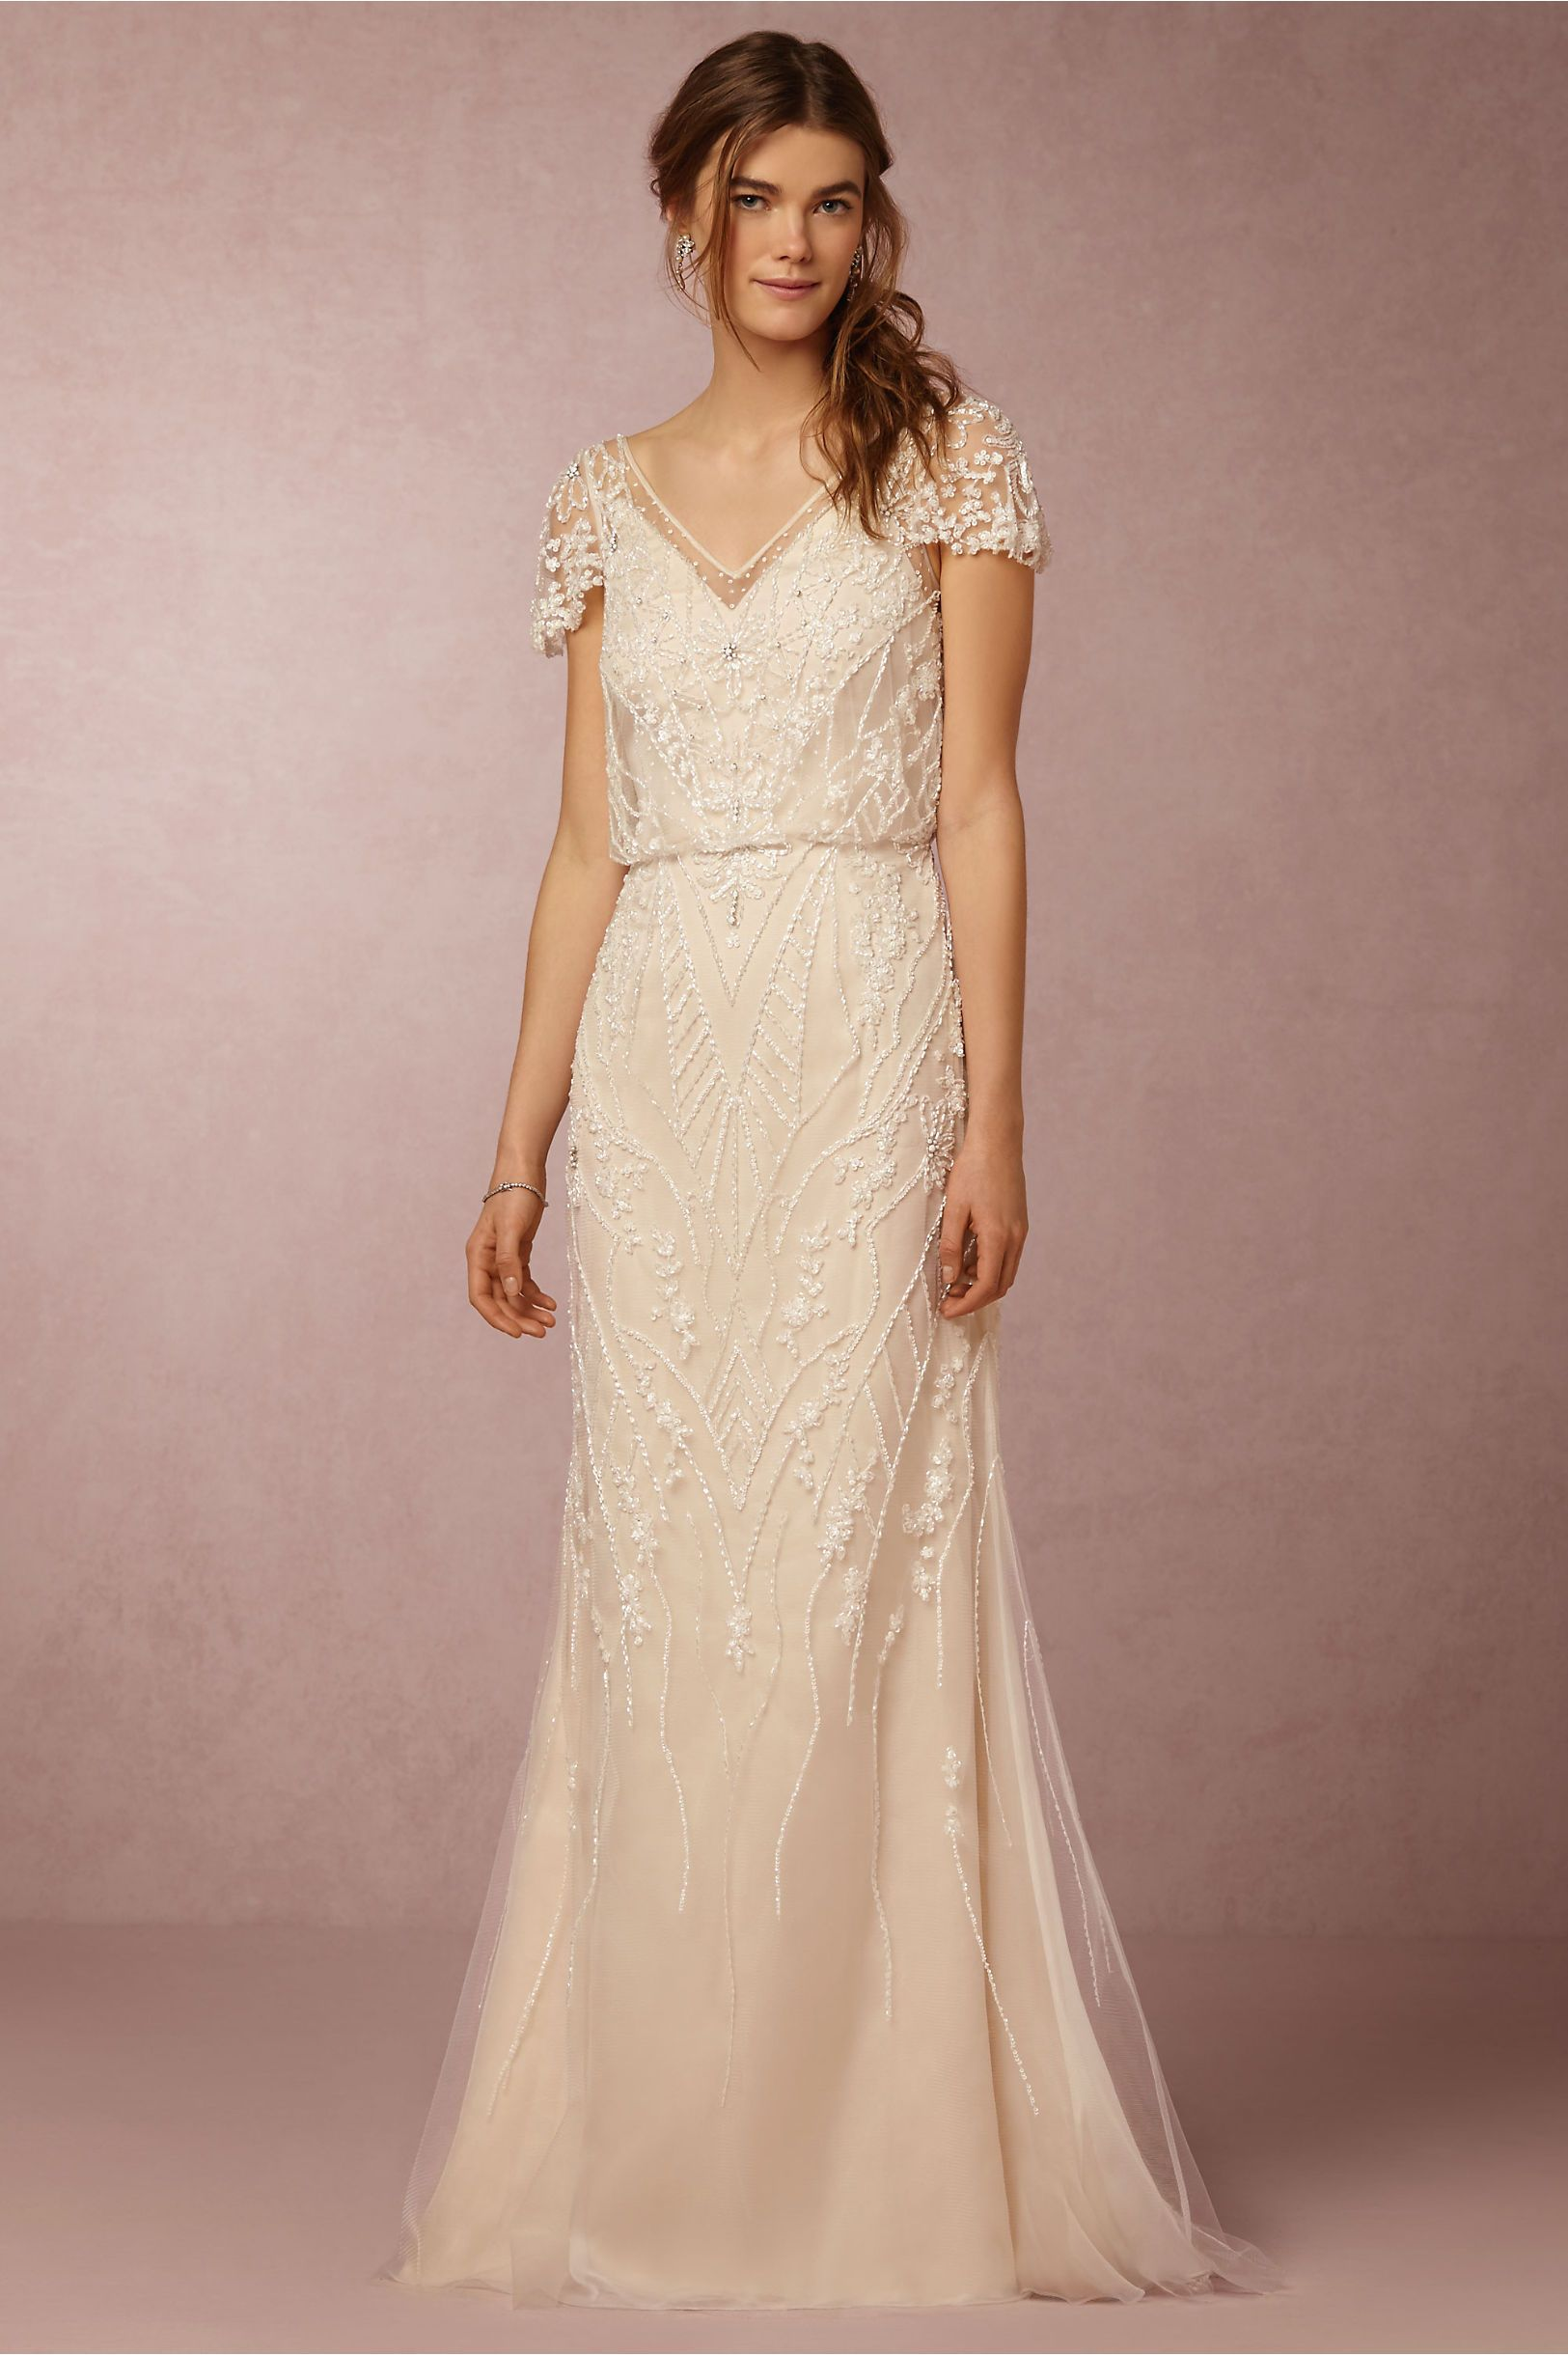 Wedding Anthropology Wedding Dresses bhldn aurora gown in bride at wedding dress hair 19 totally exquisitely romantic bohemian dresses the intricately beaded etoile gown